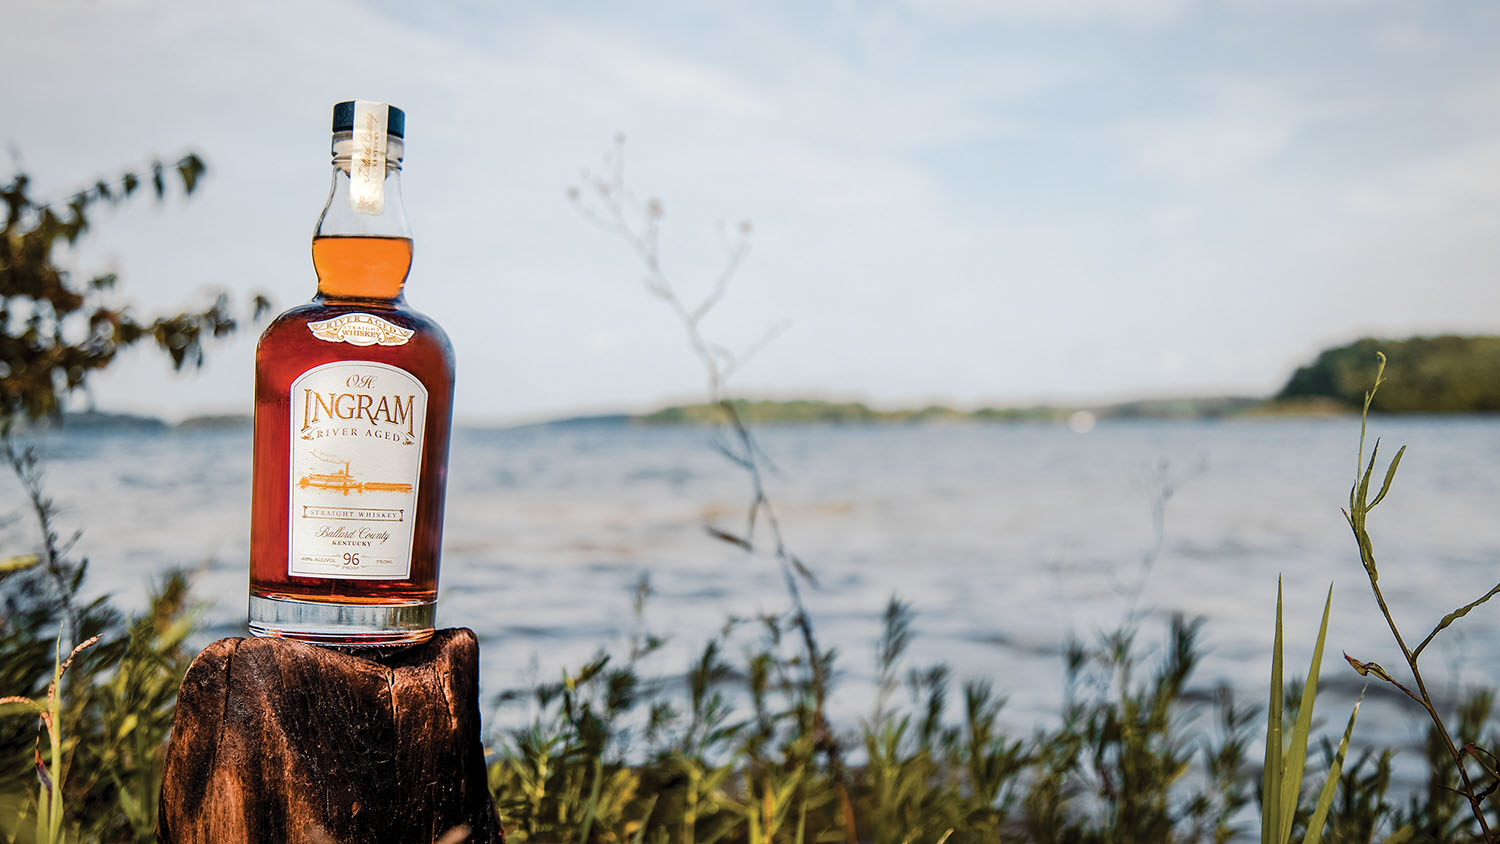 O.H. Ingram River-Aged Whiskey.